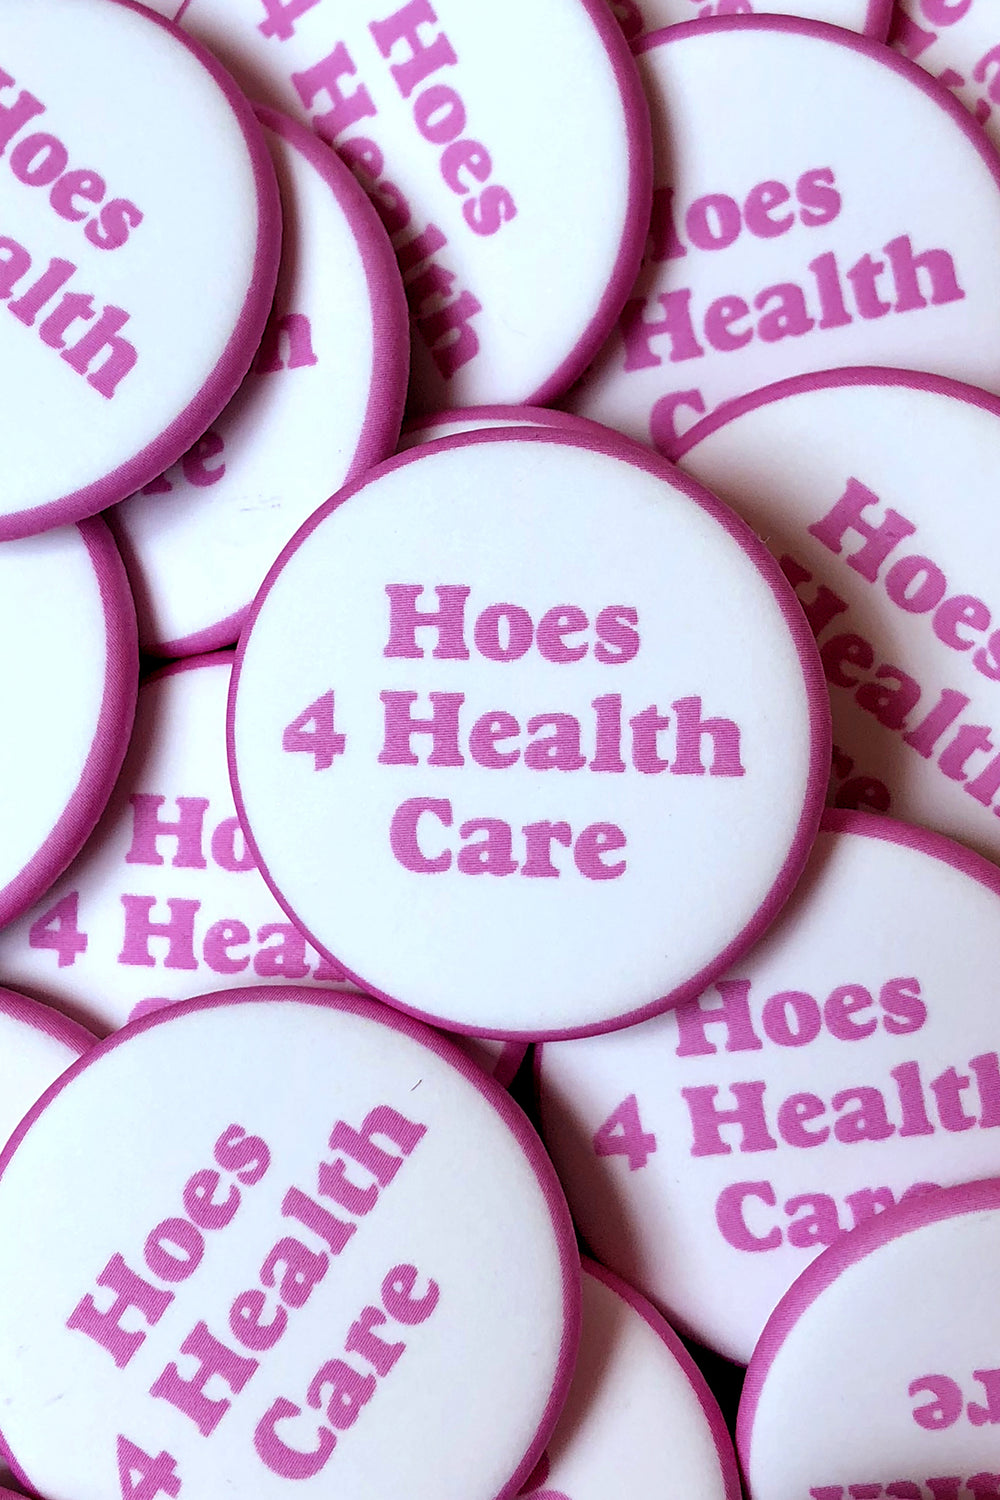 HOES 4 HEALTH CARE BUTTON